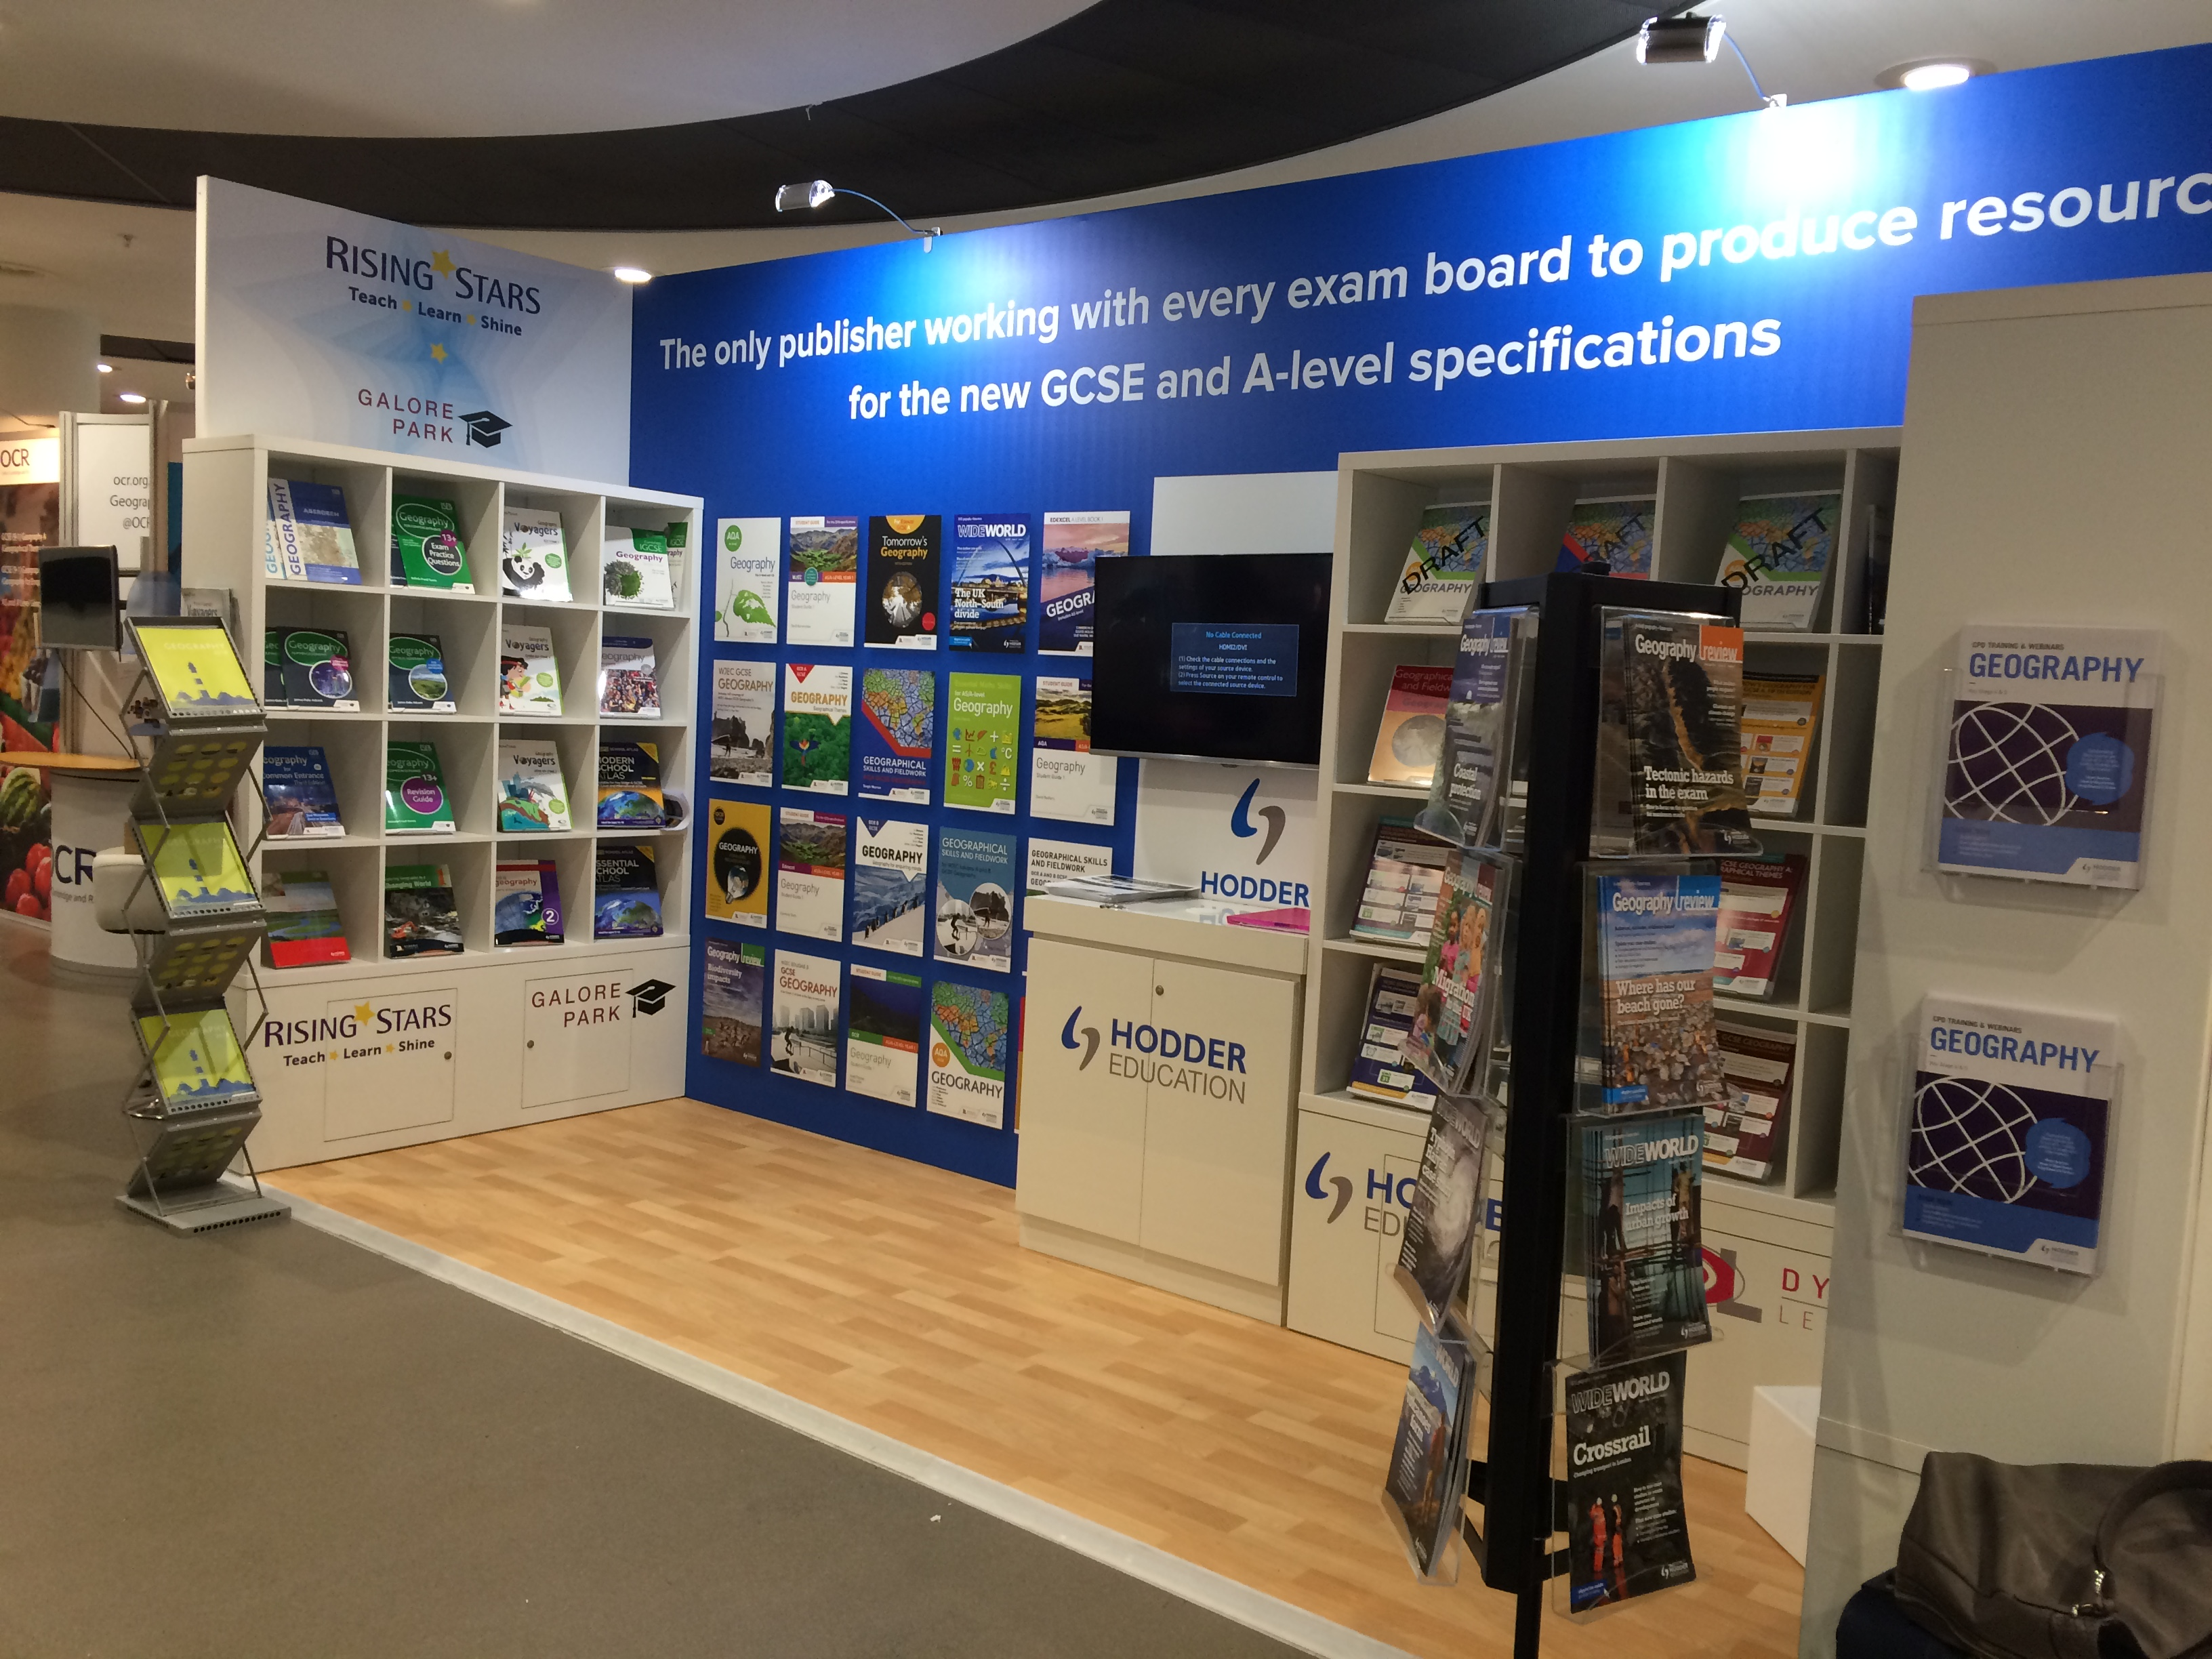 Exhibition Stand Design And Build Manchester : Hodder ga conference manchester expose designs exhibition